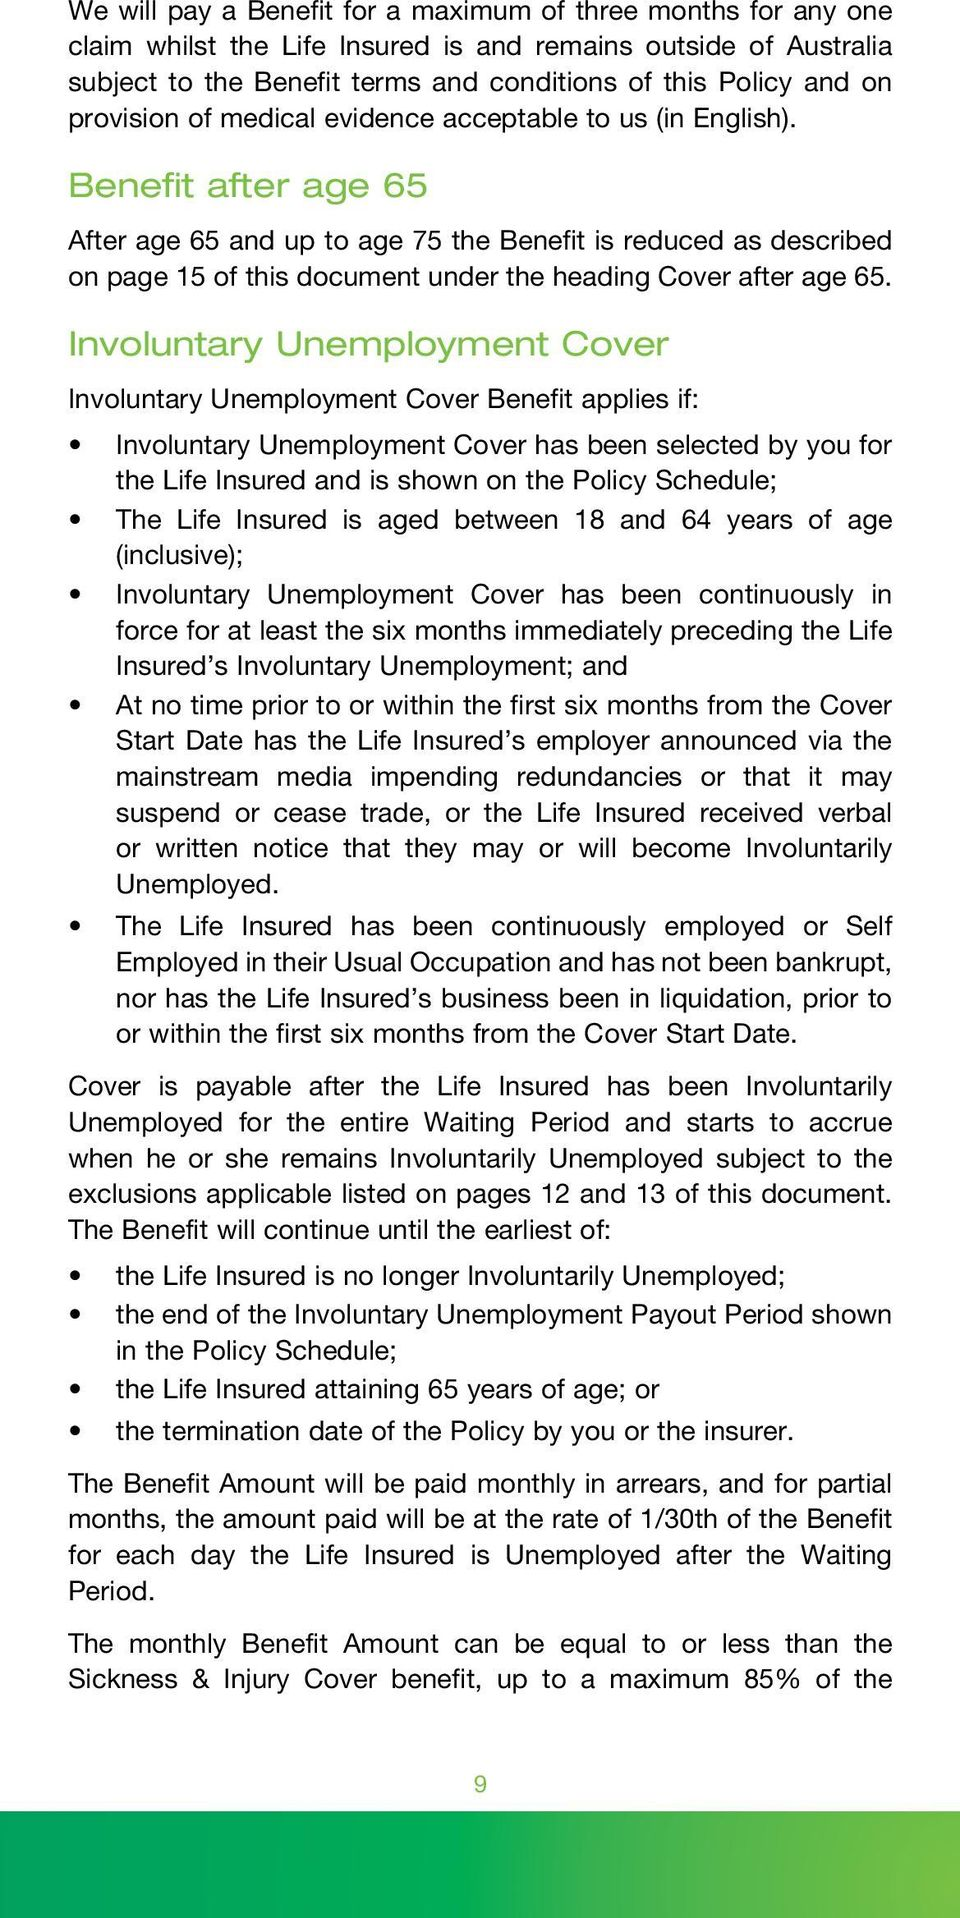 Benefit after age 65 After age 65 and up to age 75 the Benefit is reduced as described on page 15 of this document under the heading Cover after age 65.